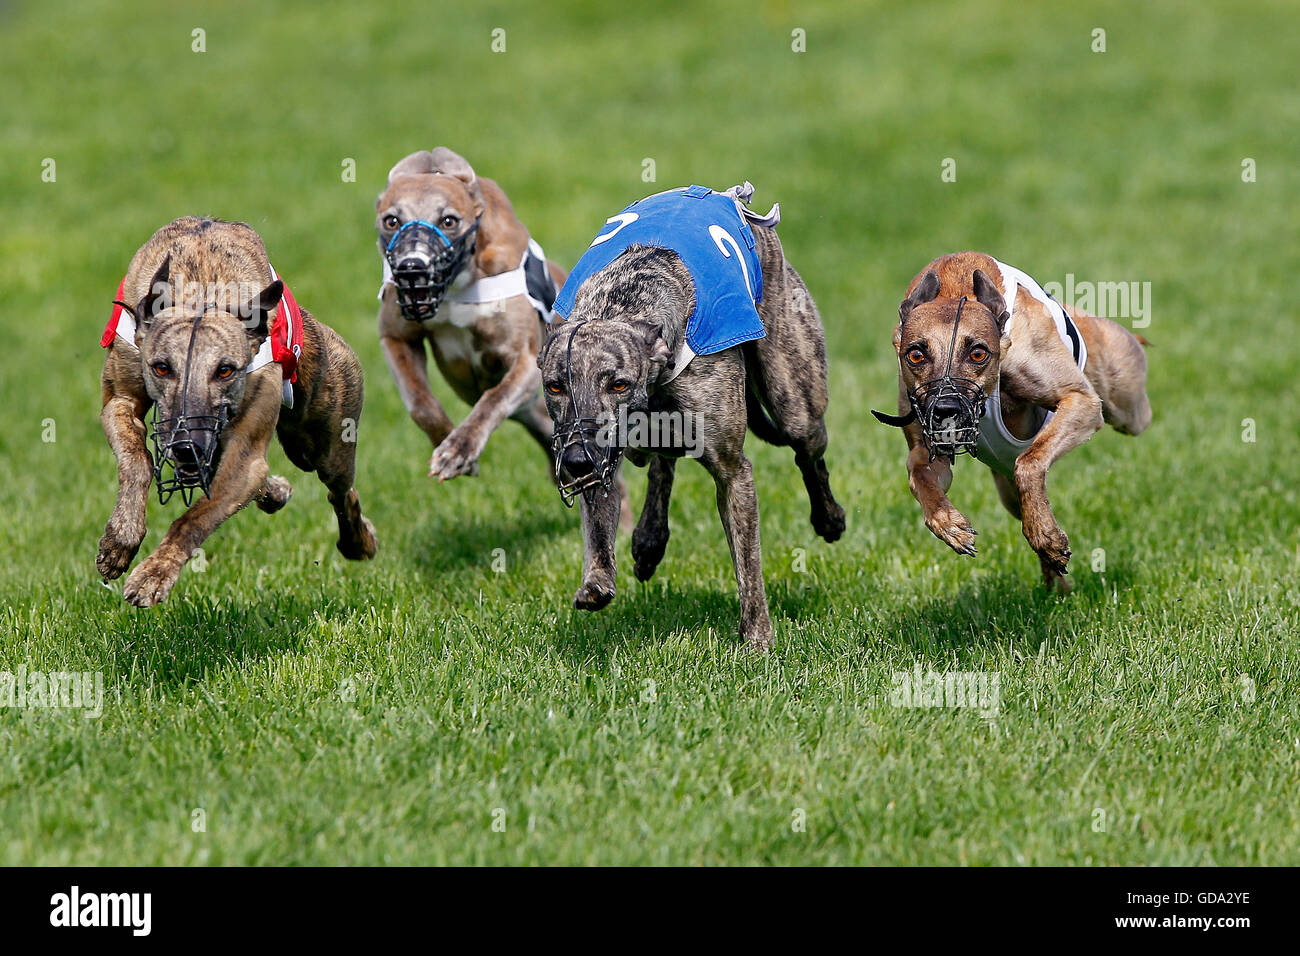 Whippet Dogs running, Racing at Track Stock Photo